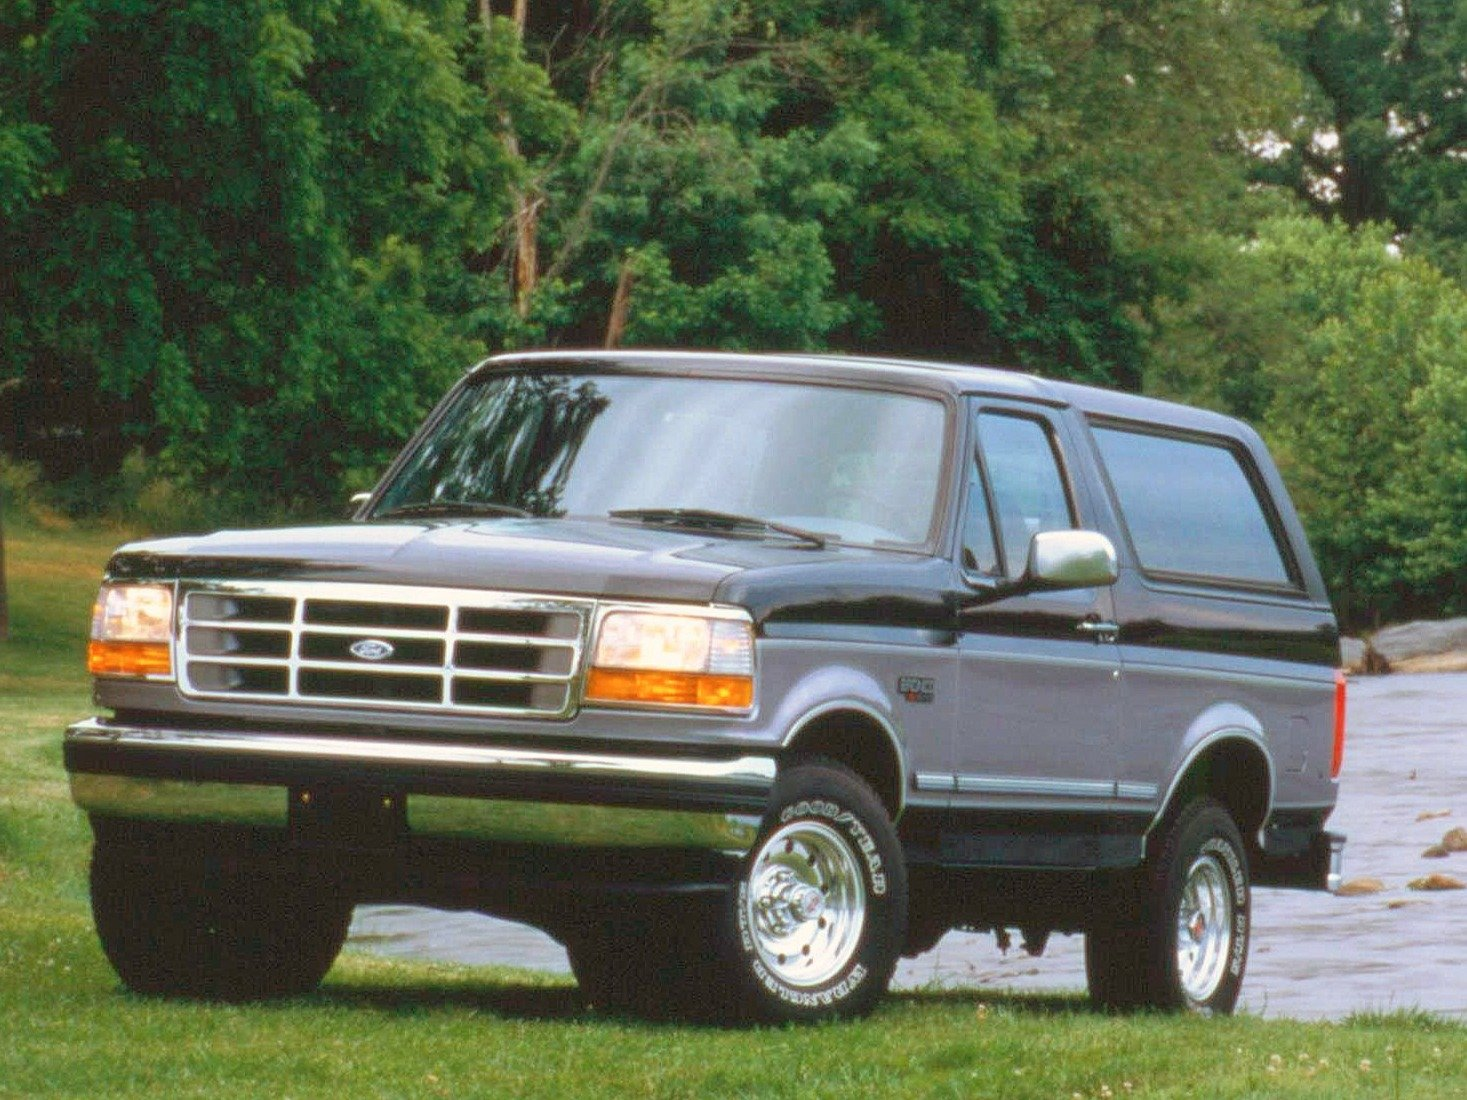 Uaw official the ford bronco and ford ranger will both be made in michigan houston chronicle